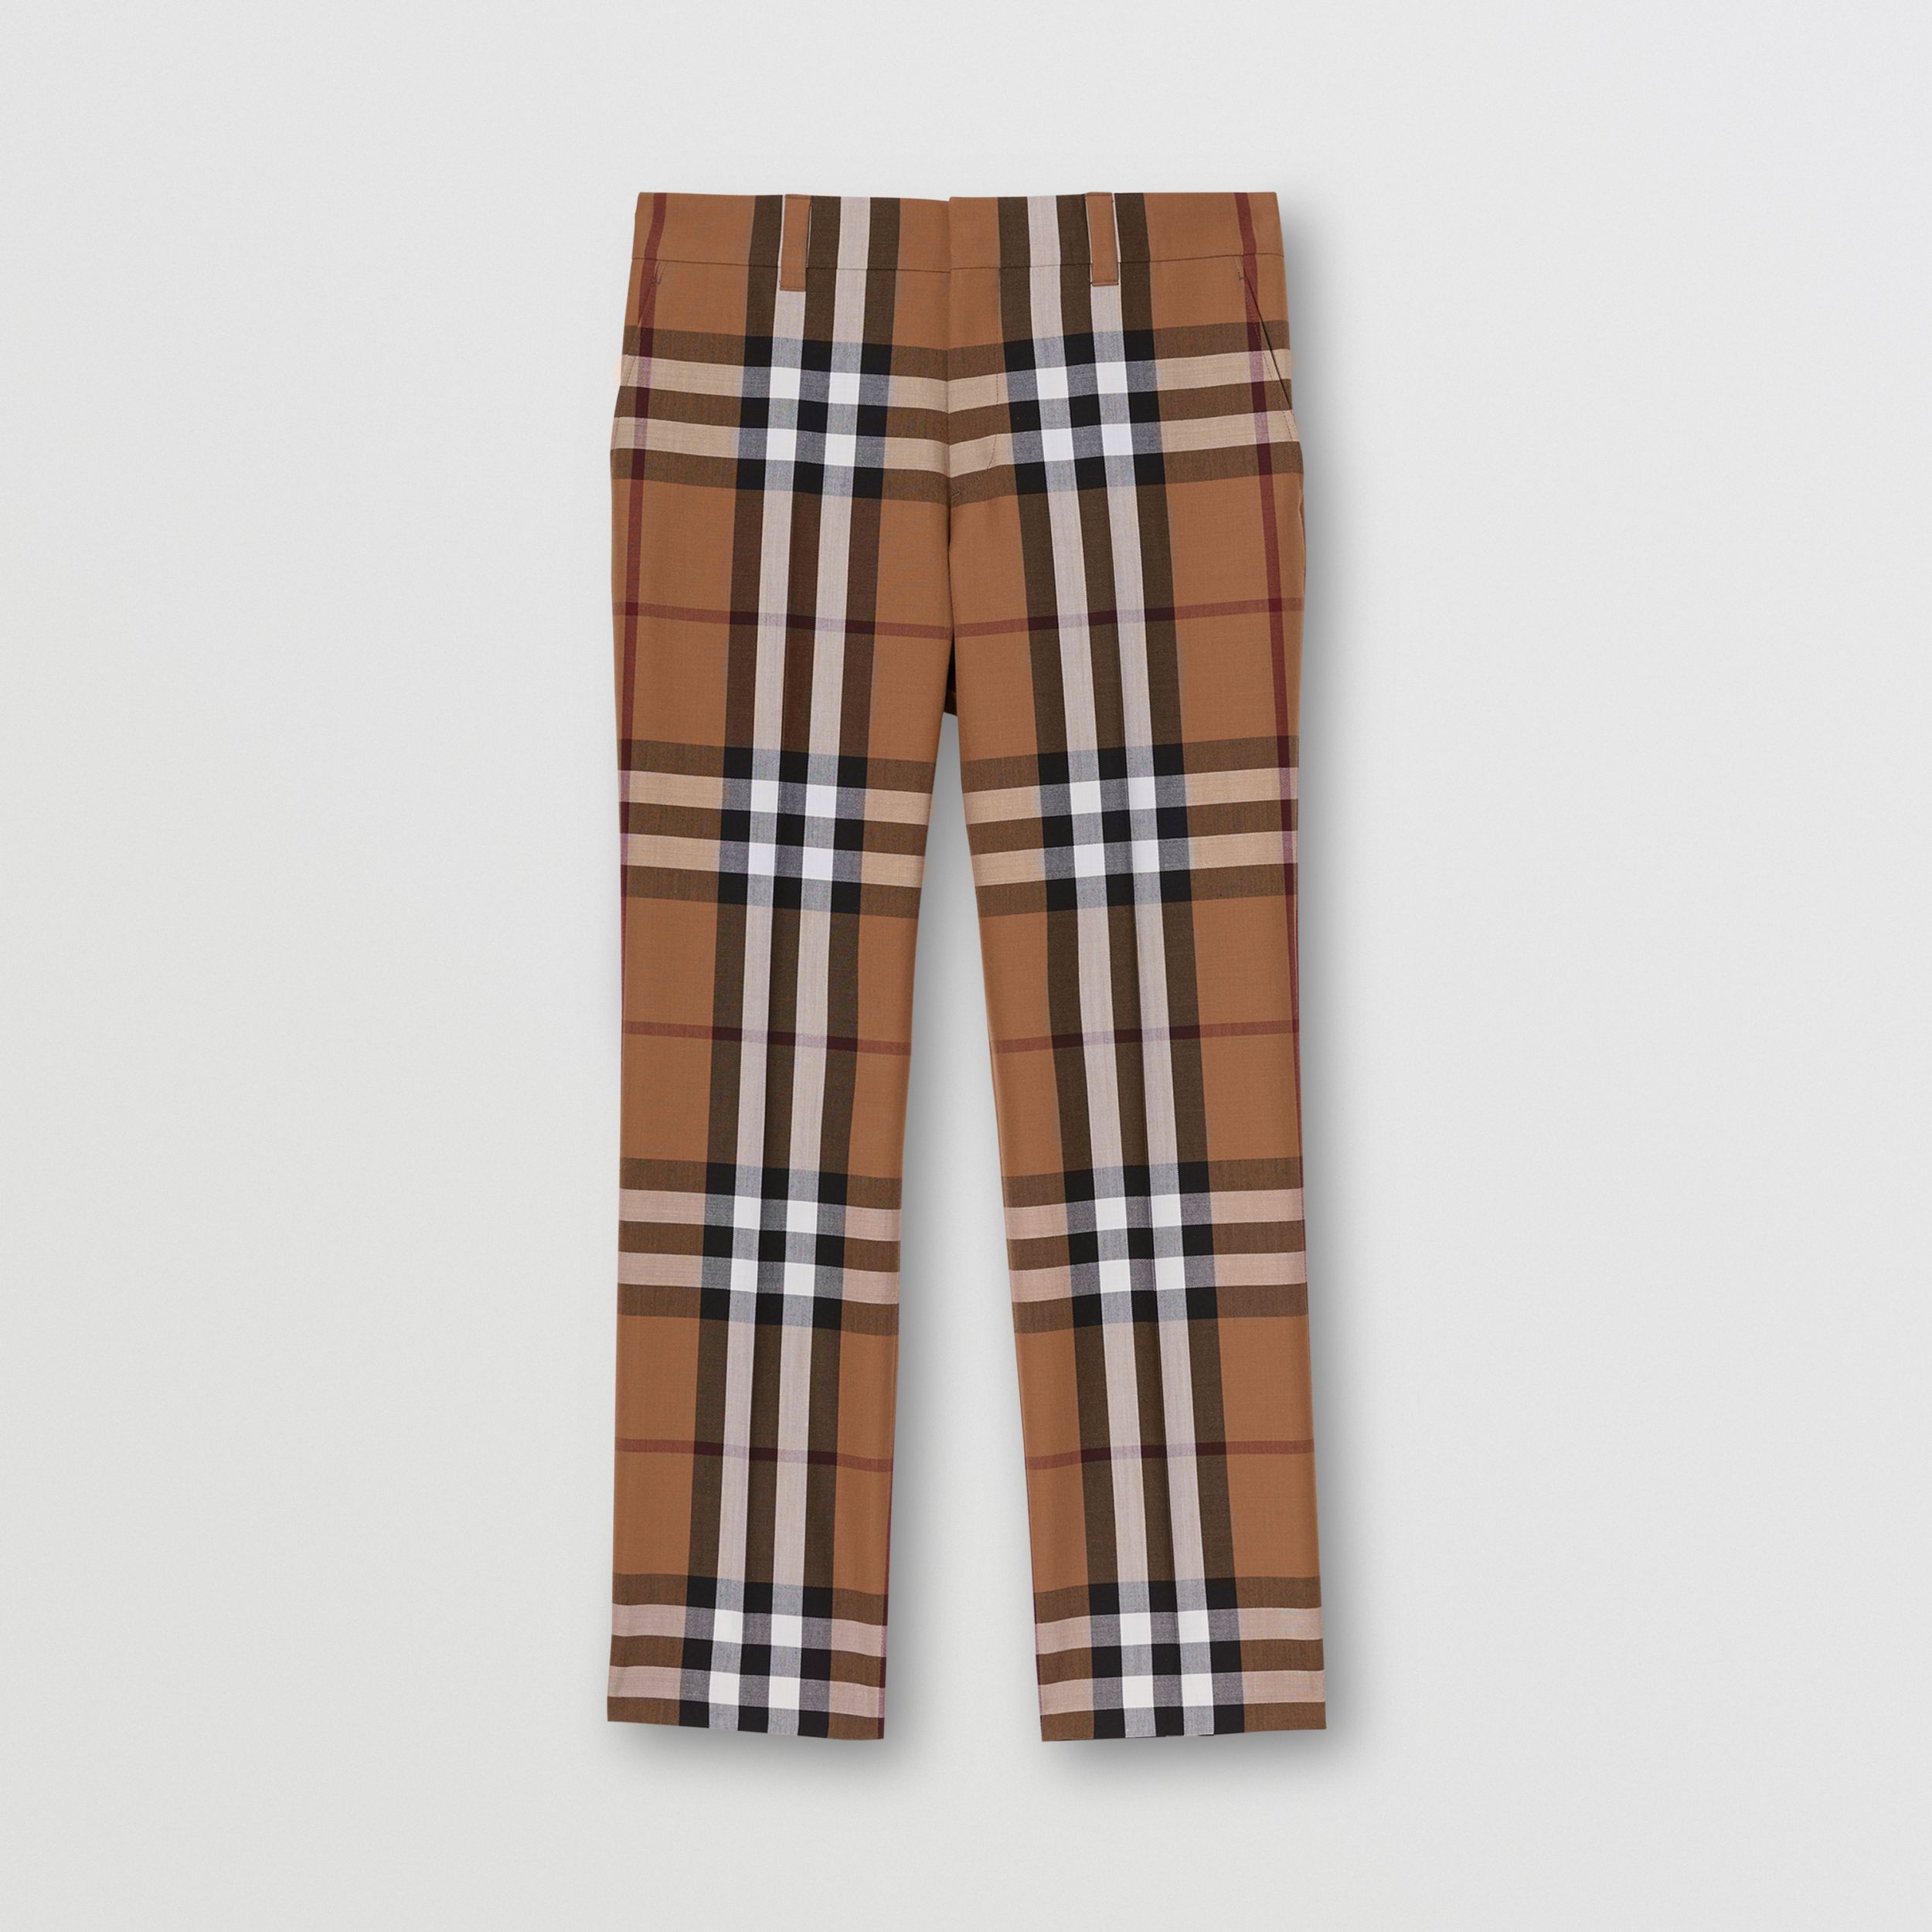 House Check Wool Tailored Trousers in Birch Brown | Burberry - 4